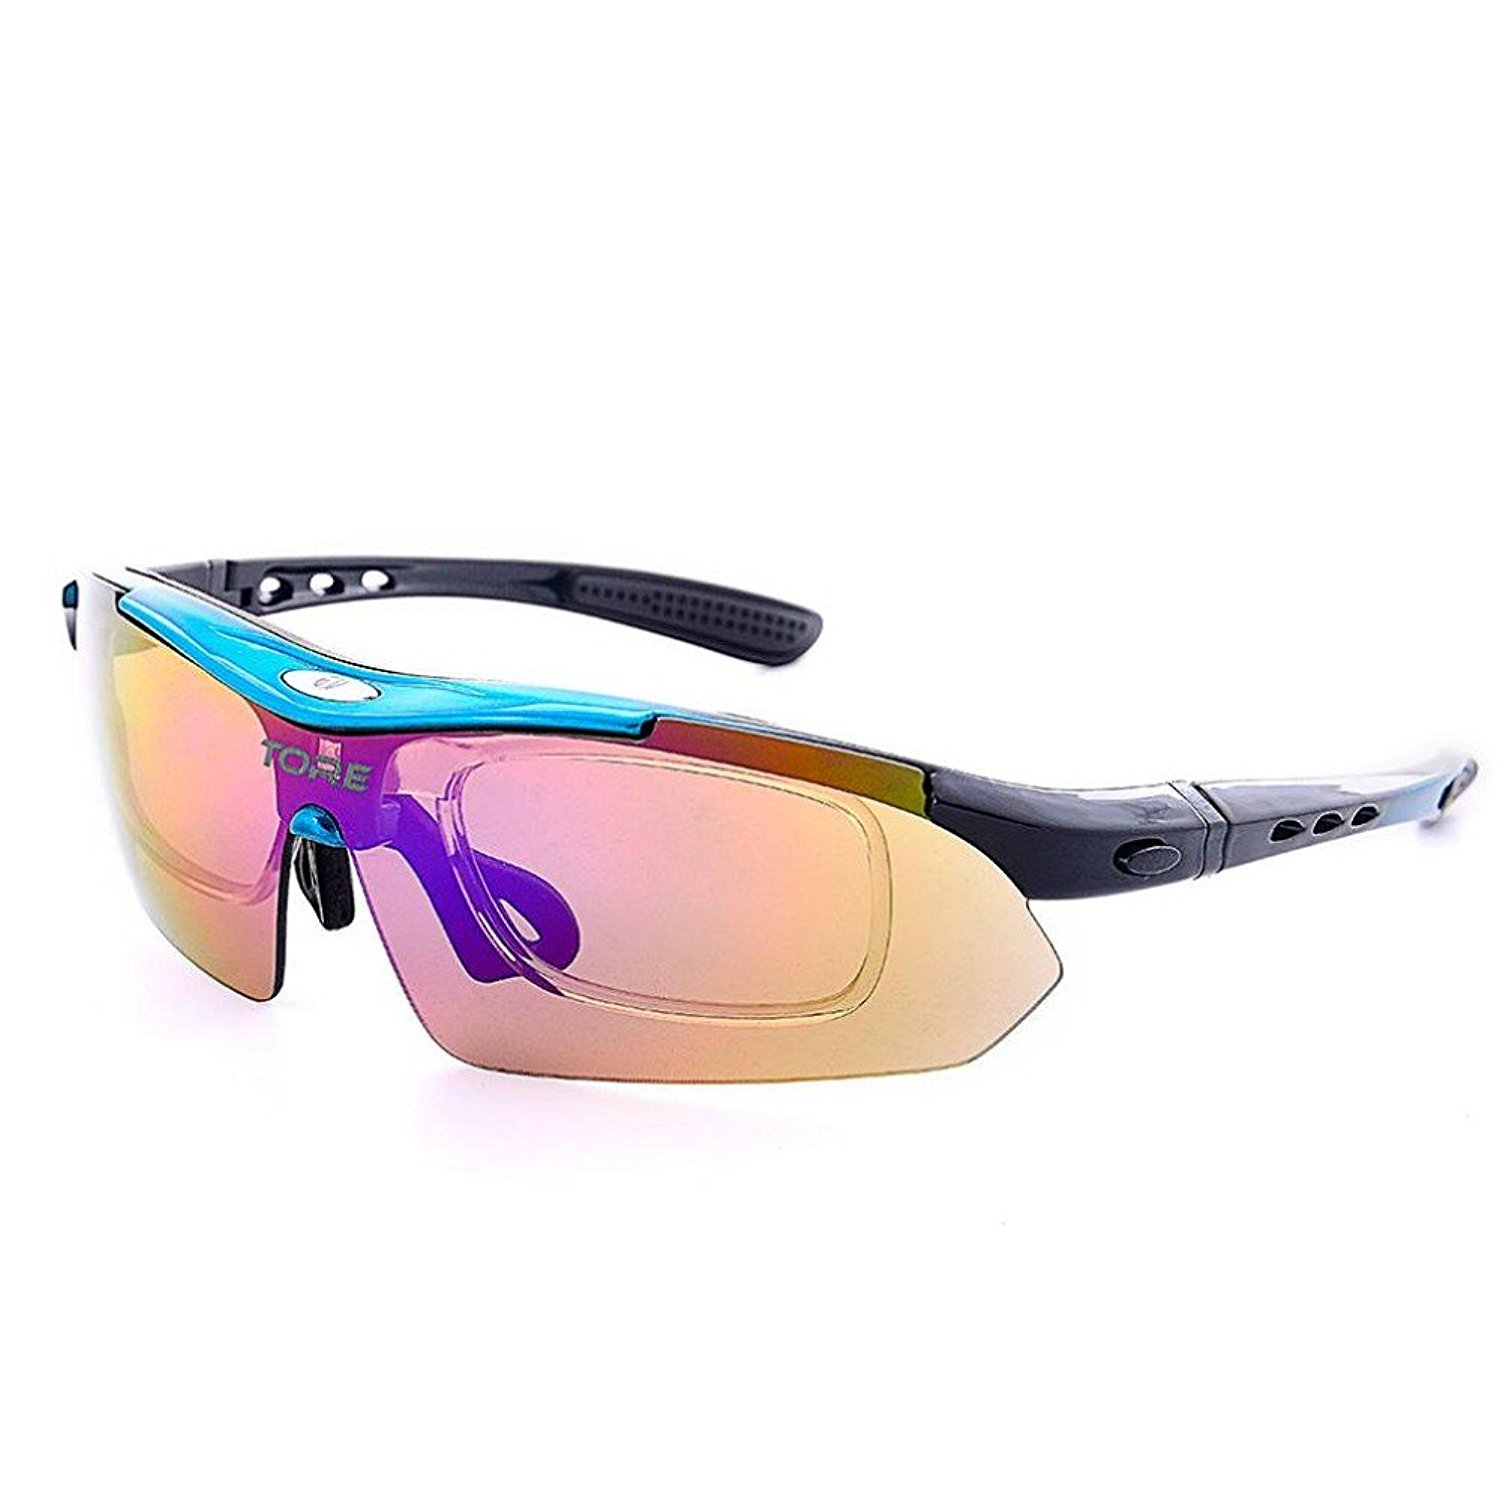 91e0146af3fe Get Quotations · Flank Polarized Cycling Glasses,Cycling UV Eye Protection  Windproof Glasses With Lens For Outdoor Cycling